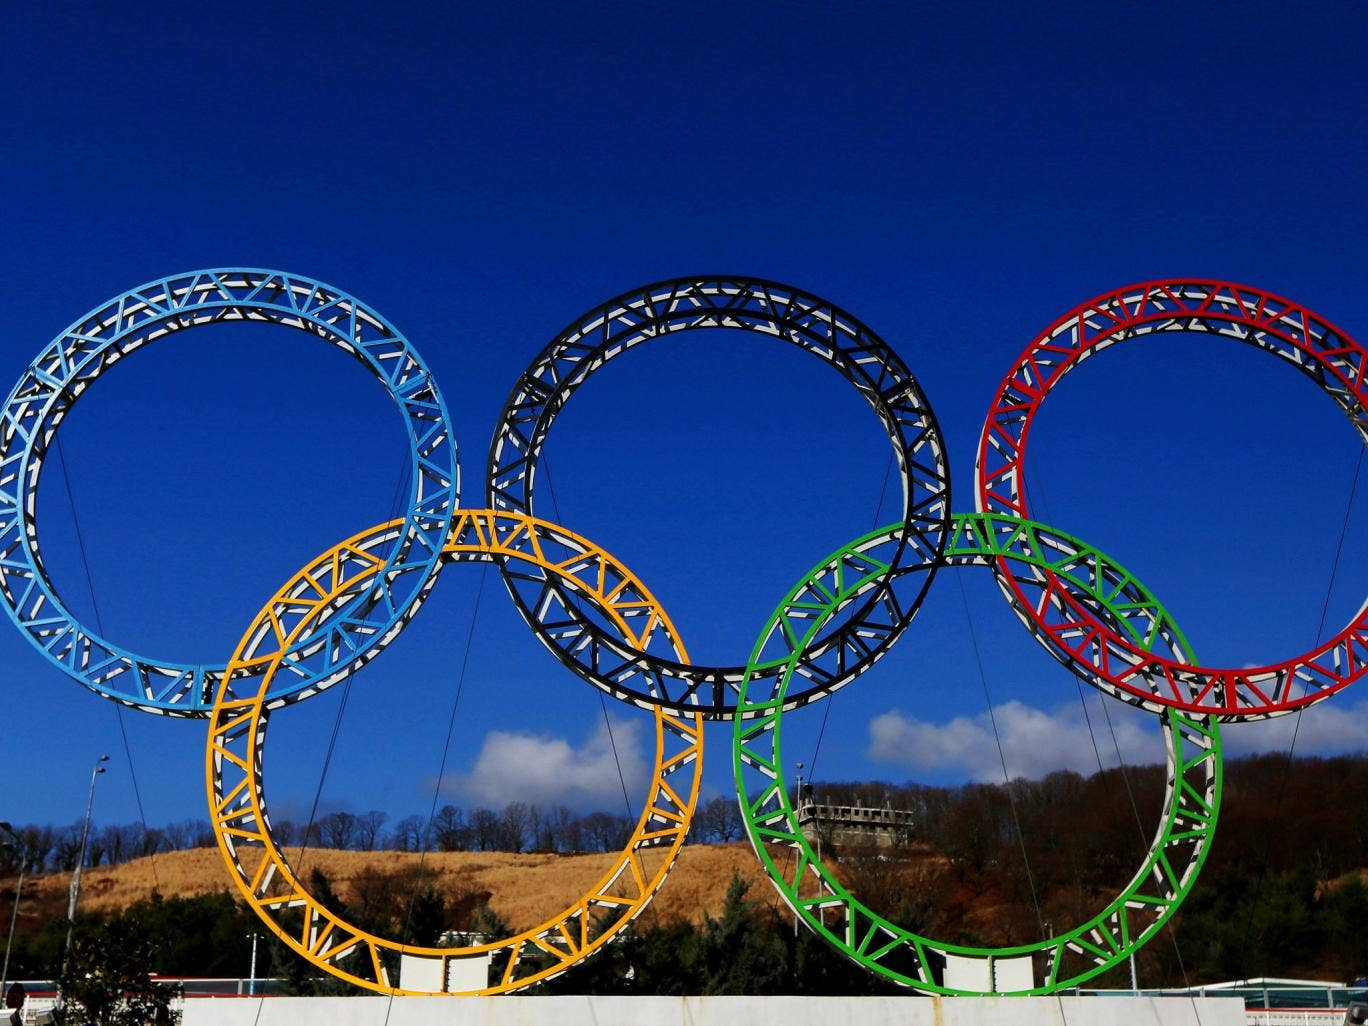 A view of the Olympic rings in Sochi